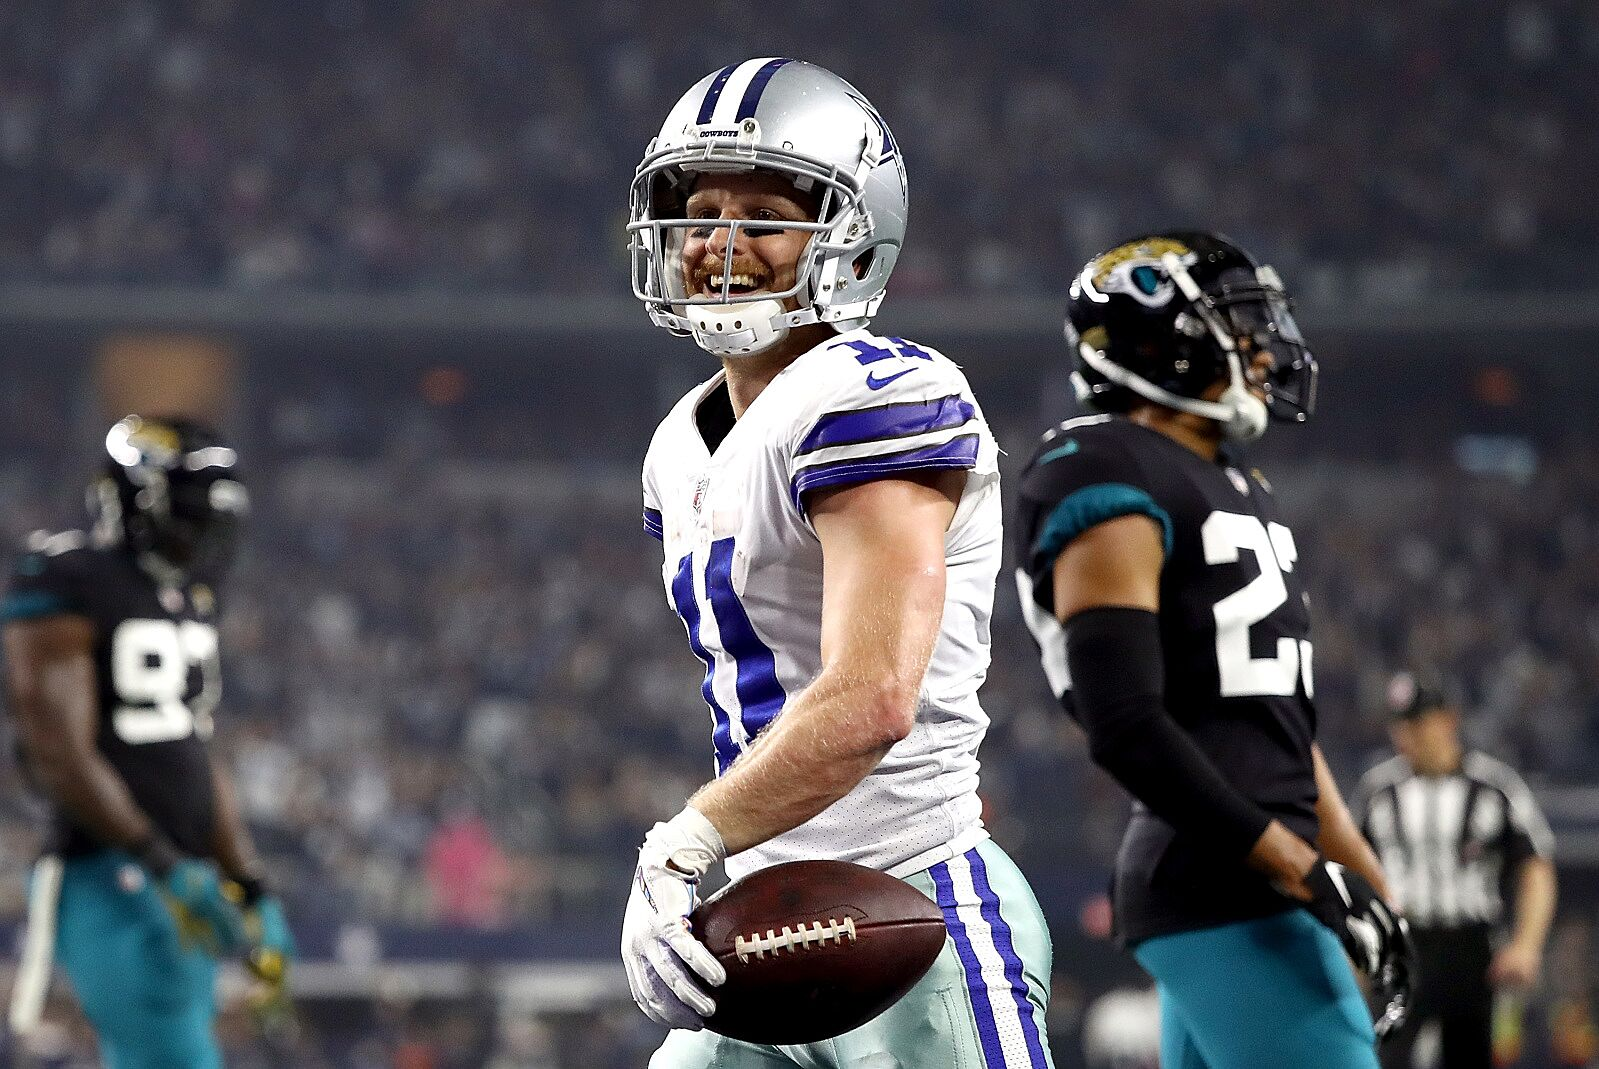 5f6948bd7 ARLINGTON, TX – OCTOBER 14: Cole Beasley #11 of the Dallas Cowboys smiles  after scoring a touchdown in the second quarter against the Jacksonville  Jaguars ...